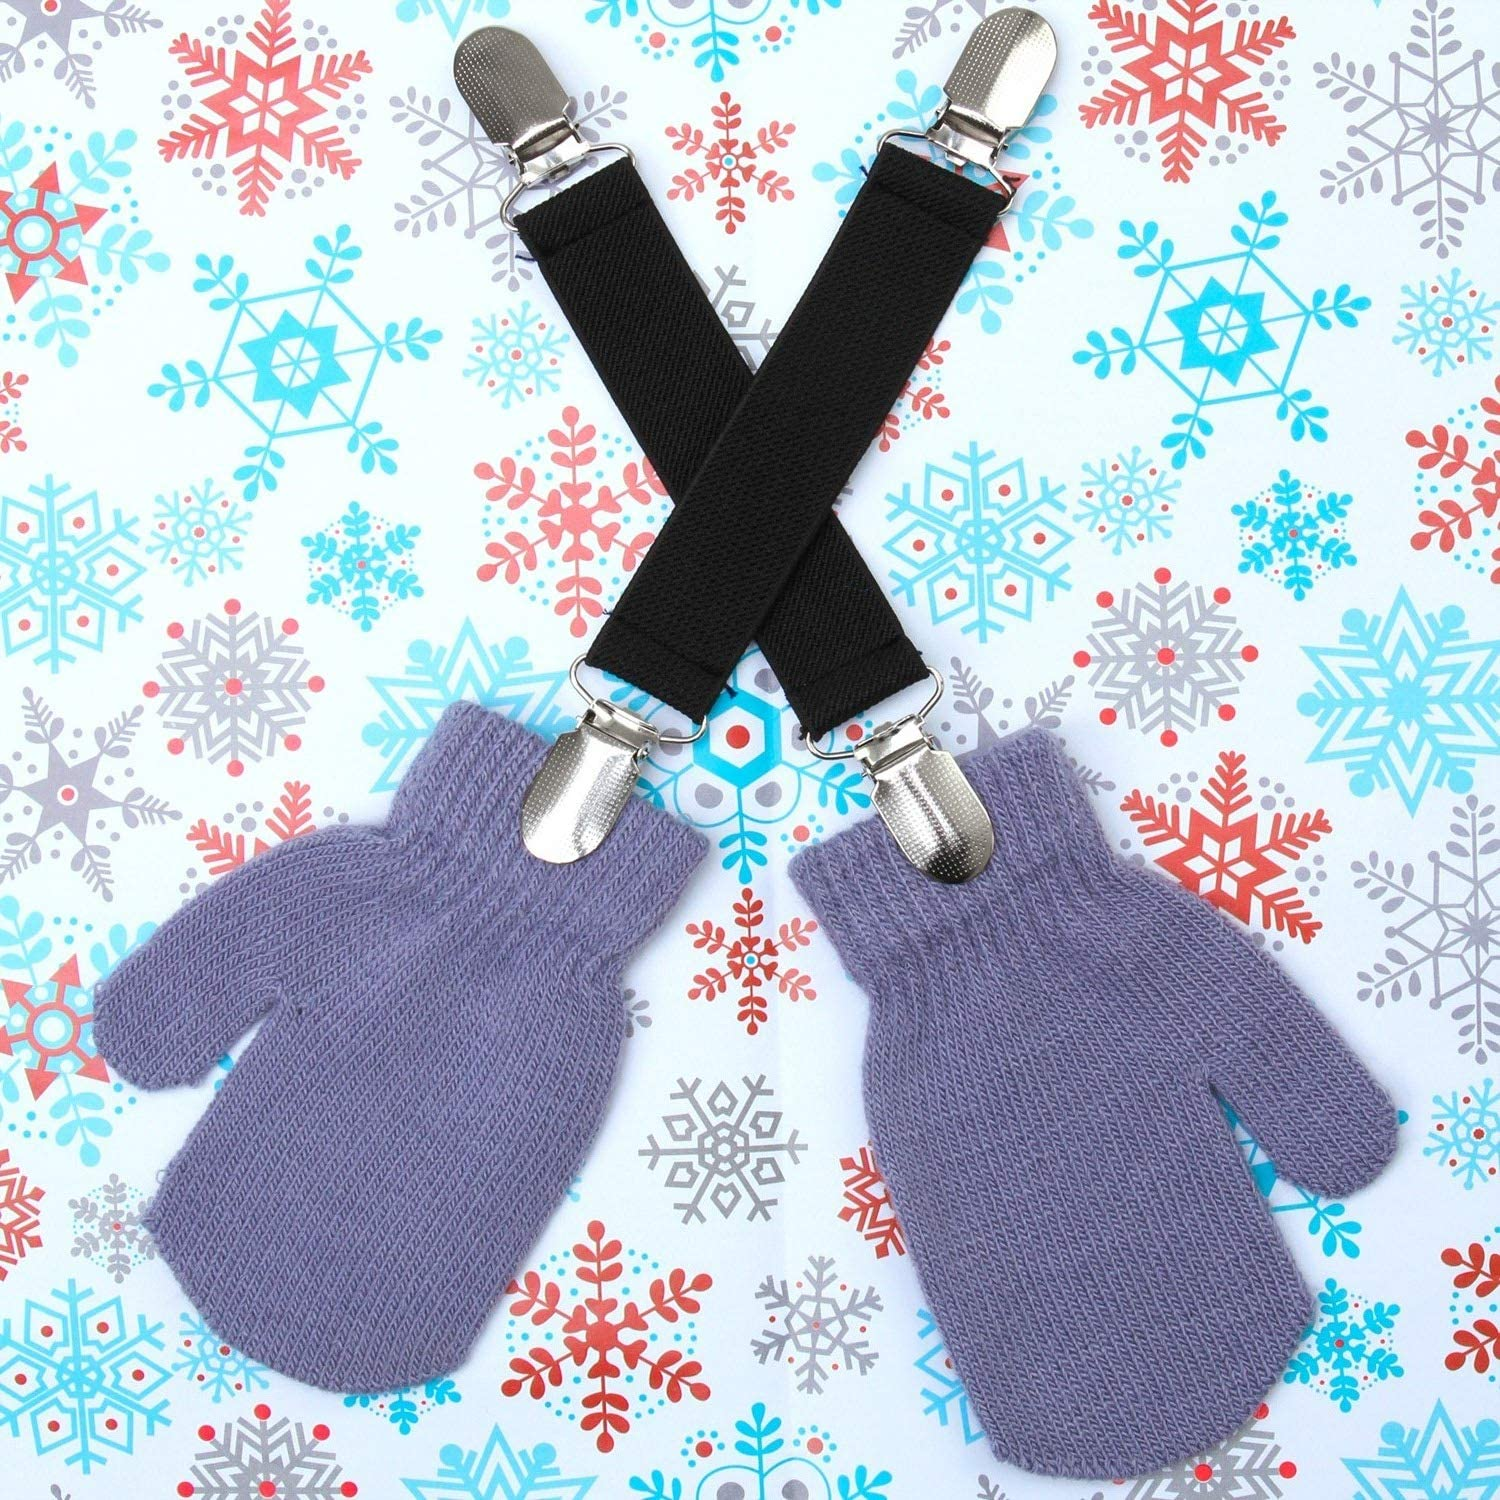 Resinta 6 Pieces Kids Mitten Clips Stainless Steel Elastic Mitten and Glove Clips